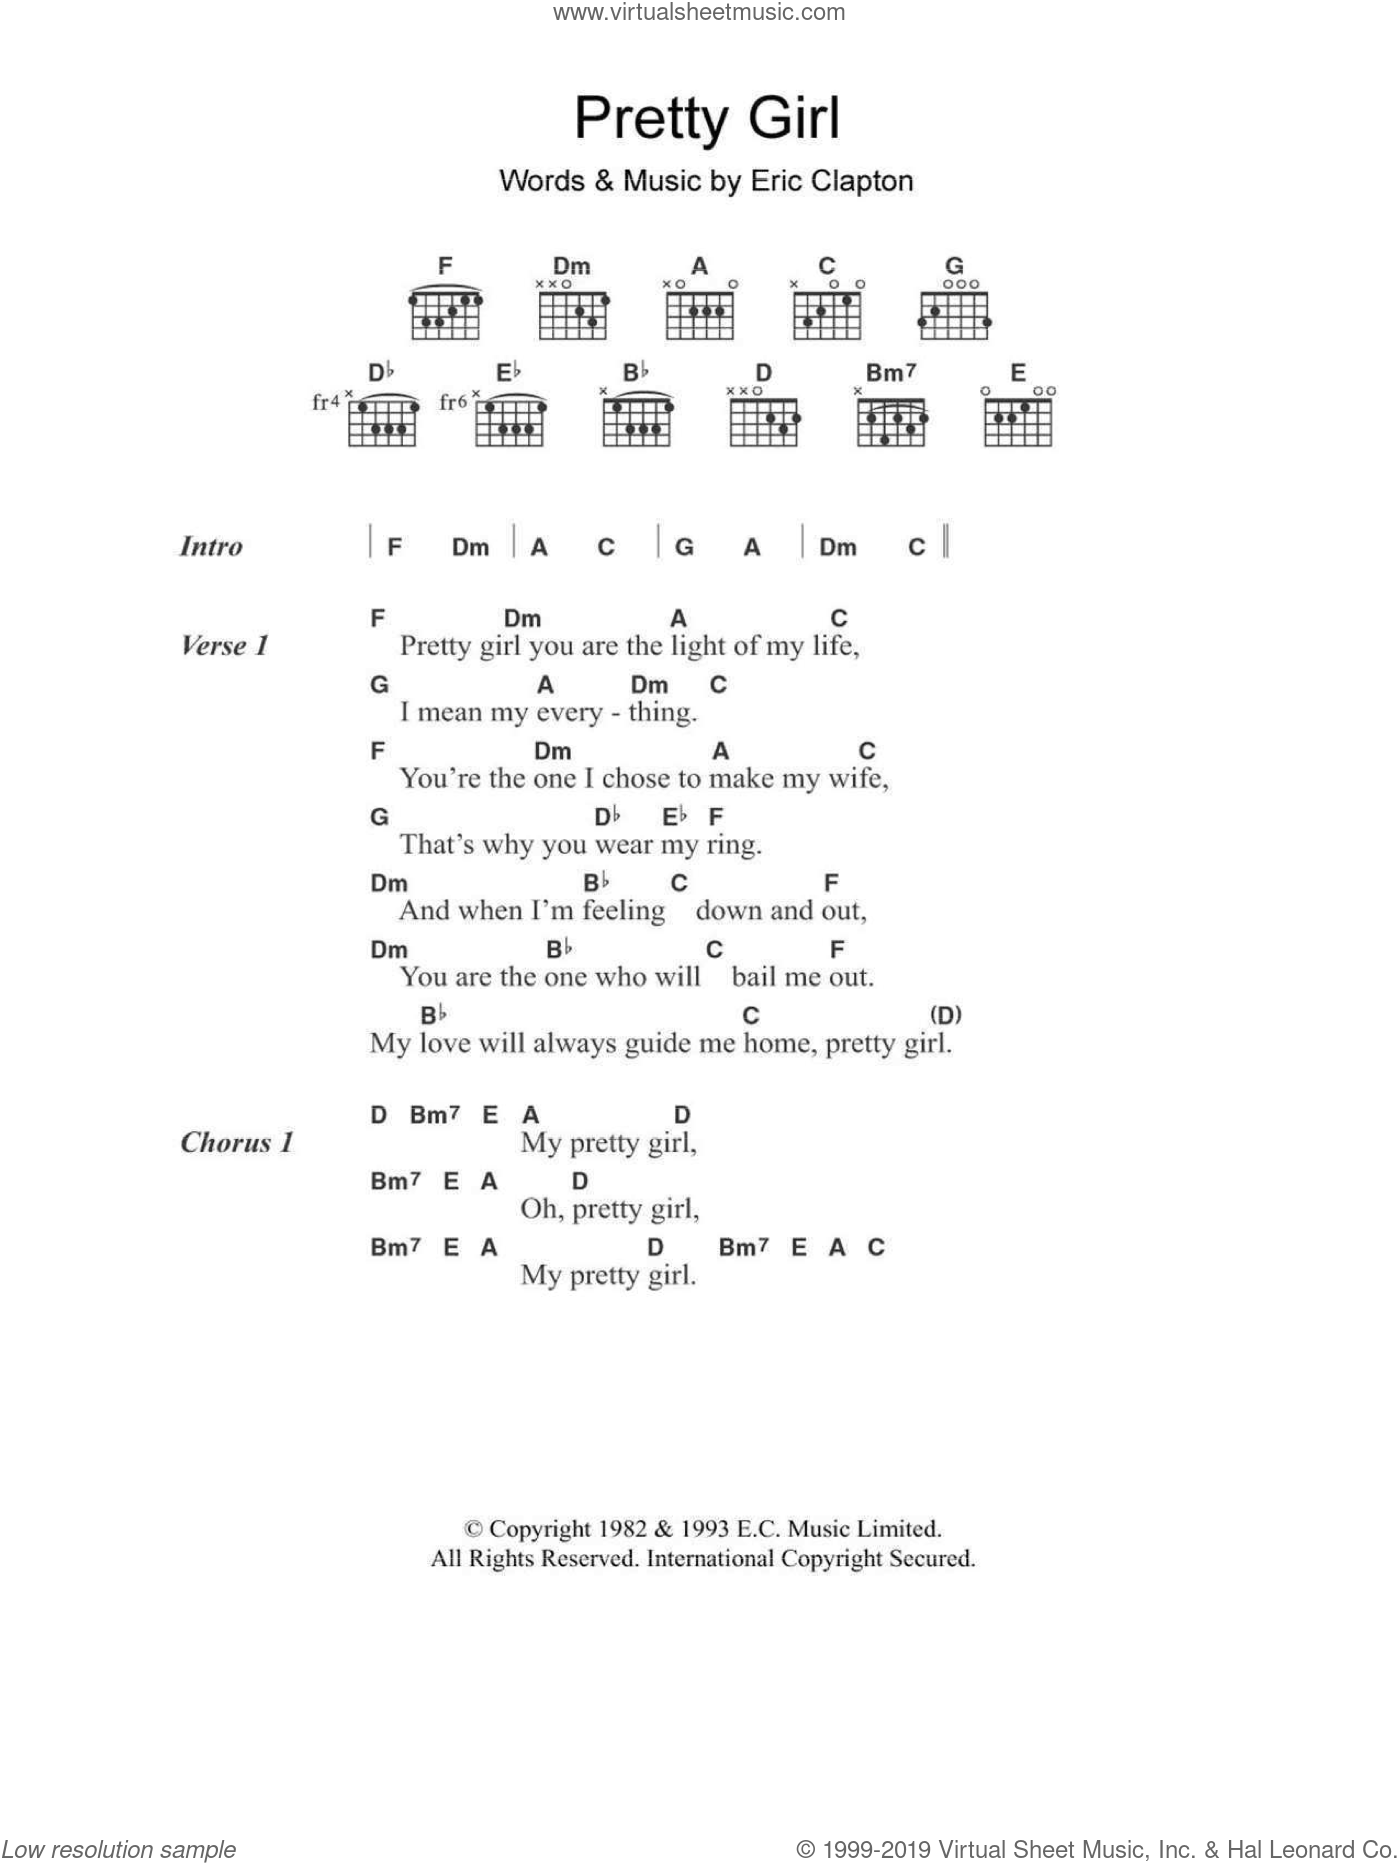 Pretty Girl sheet music for guitar (chords) by Eric Clapton